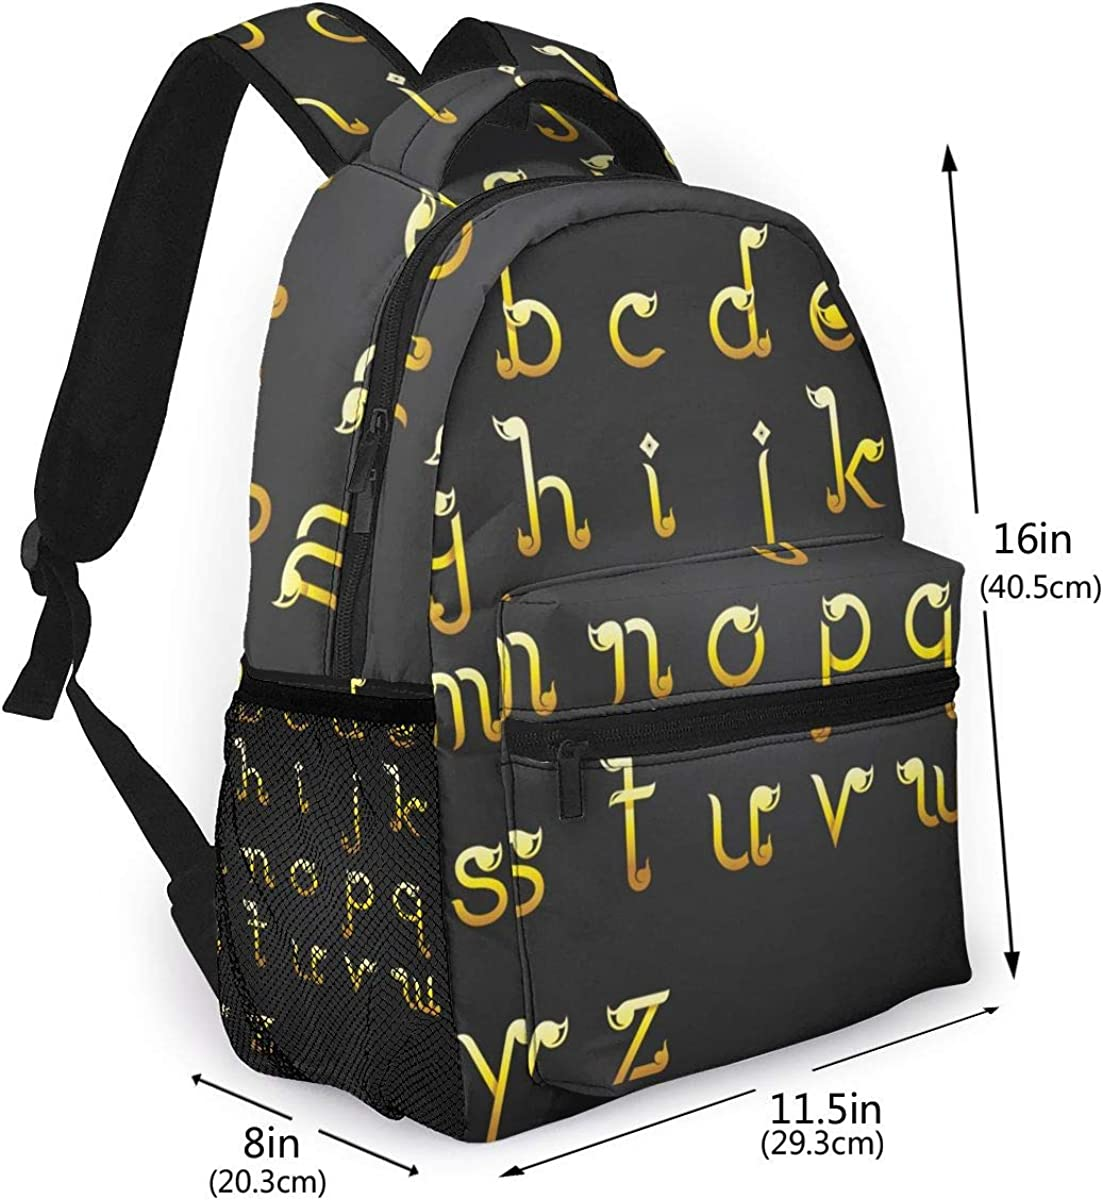 Student Backpack Alphabet Design In Thai Style Unisex Laptop Bag Lightweight Casual Rucksack For Commuter School And Traveling Fits 15.6 Inch Laptop